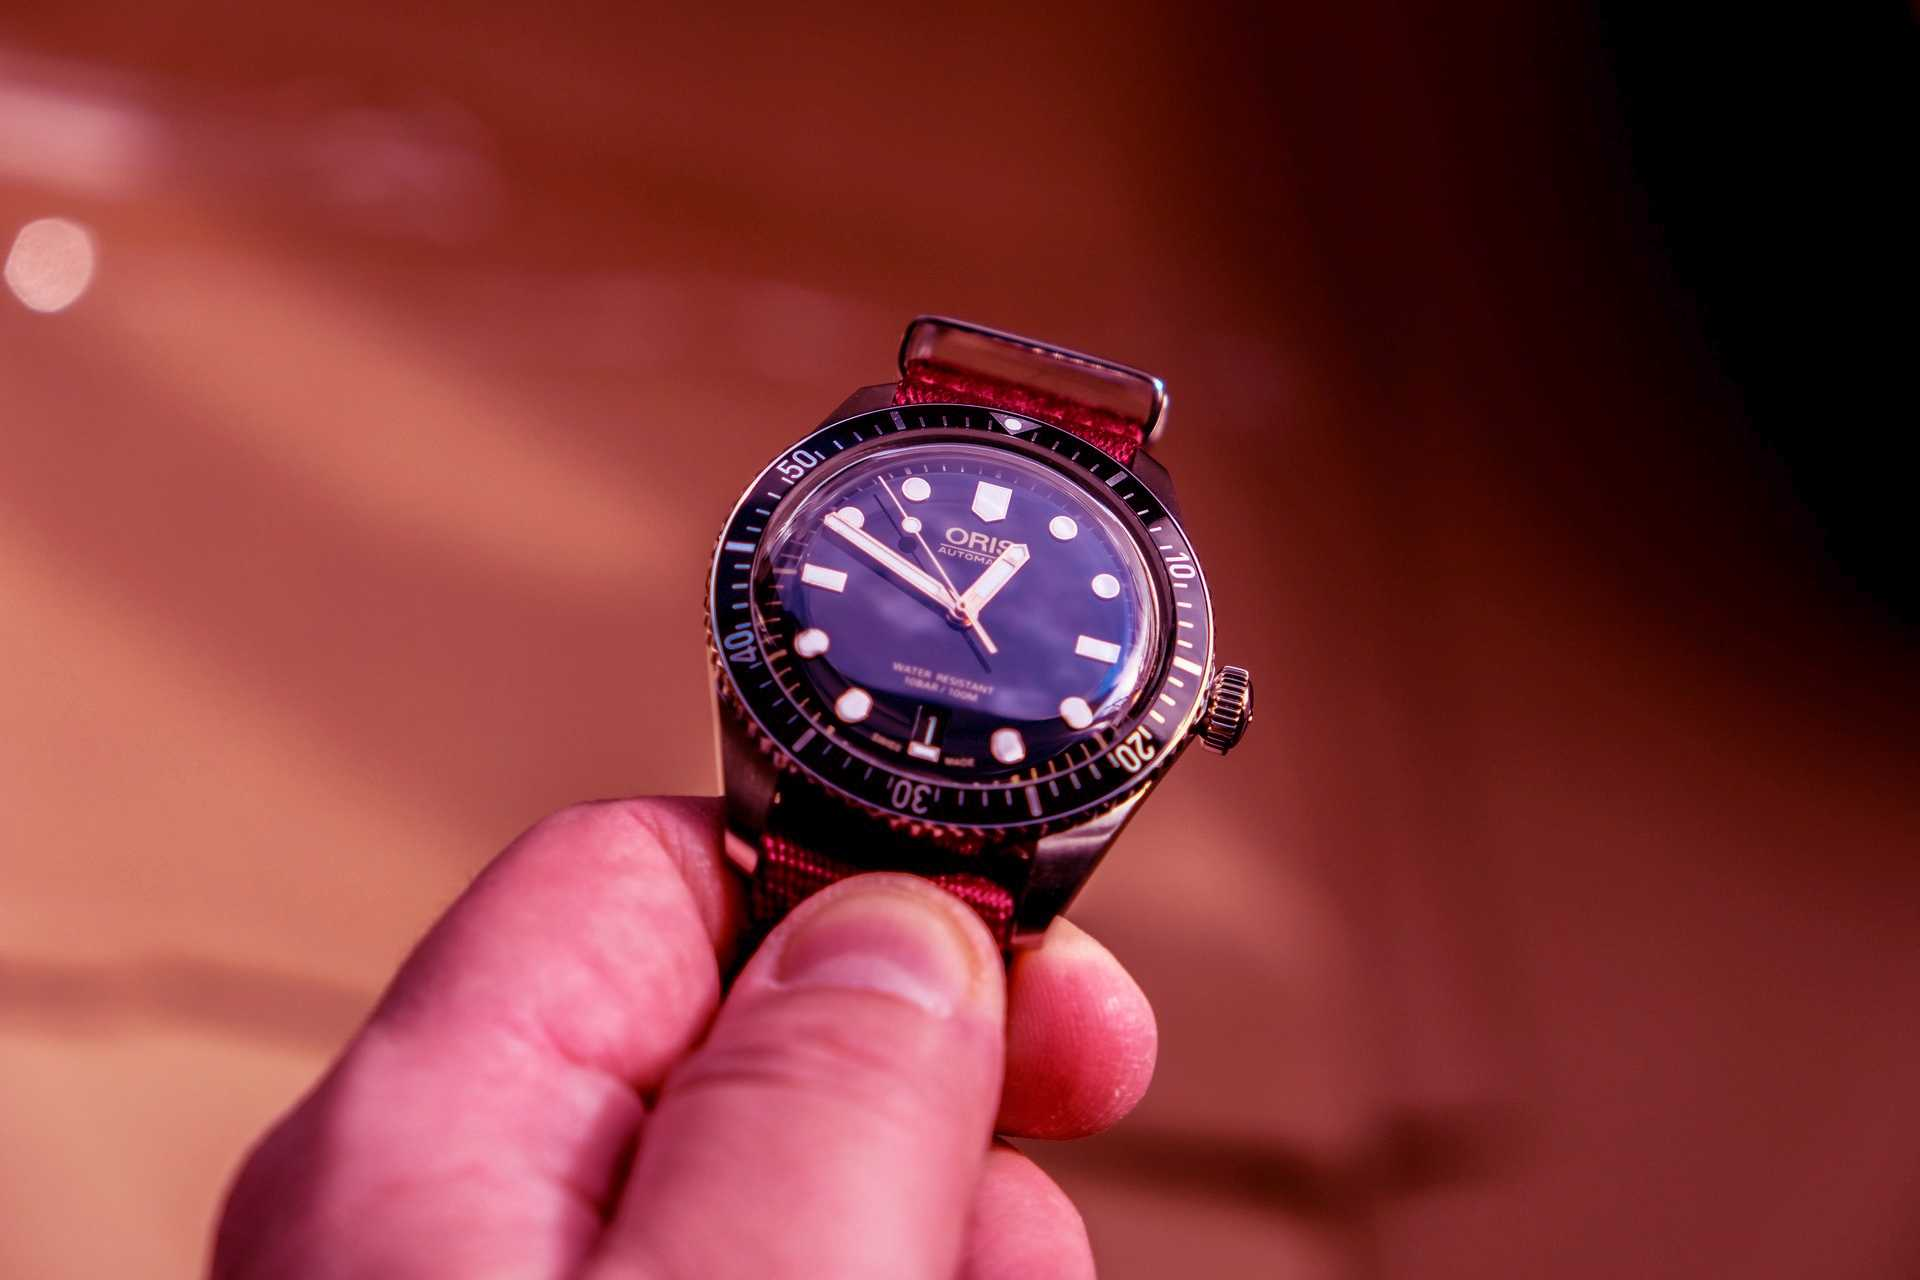 Top Things You Should Know About  Oris Watches